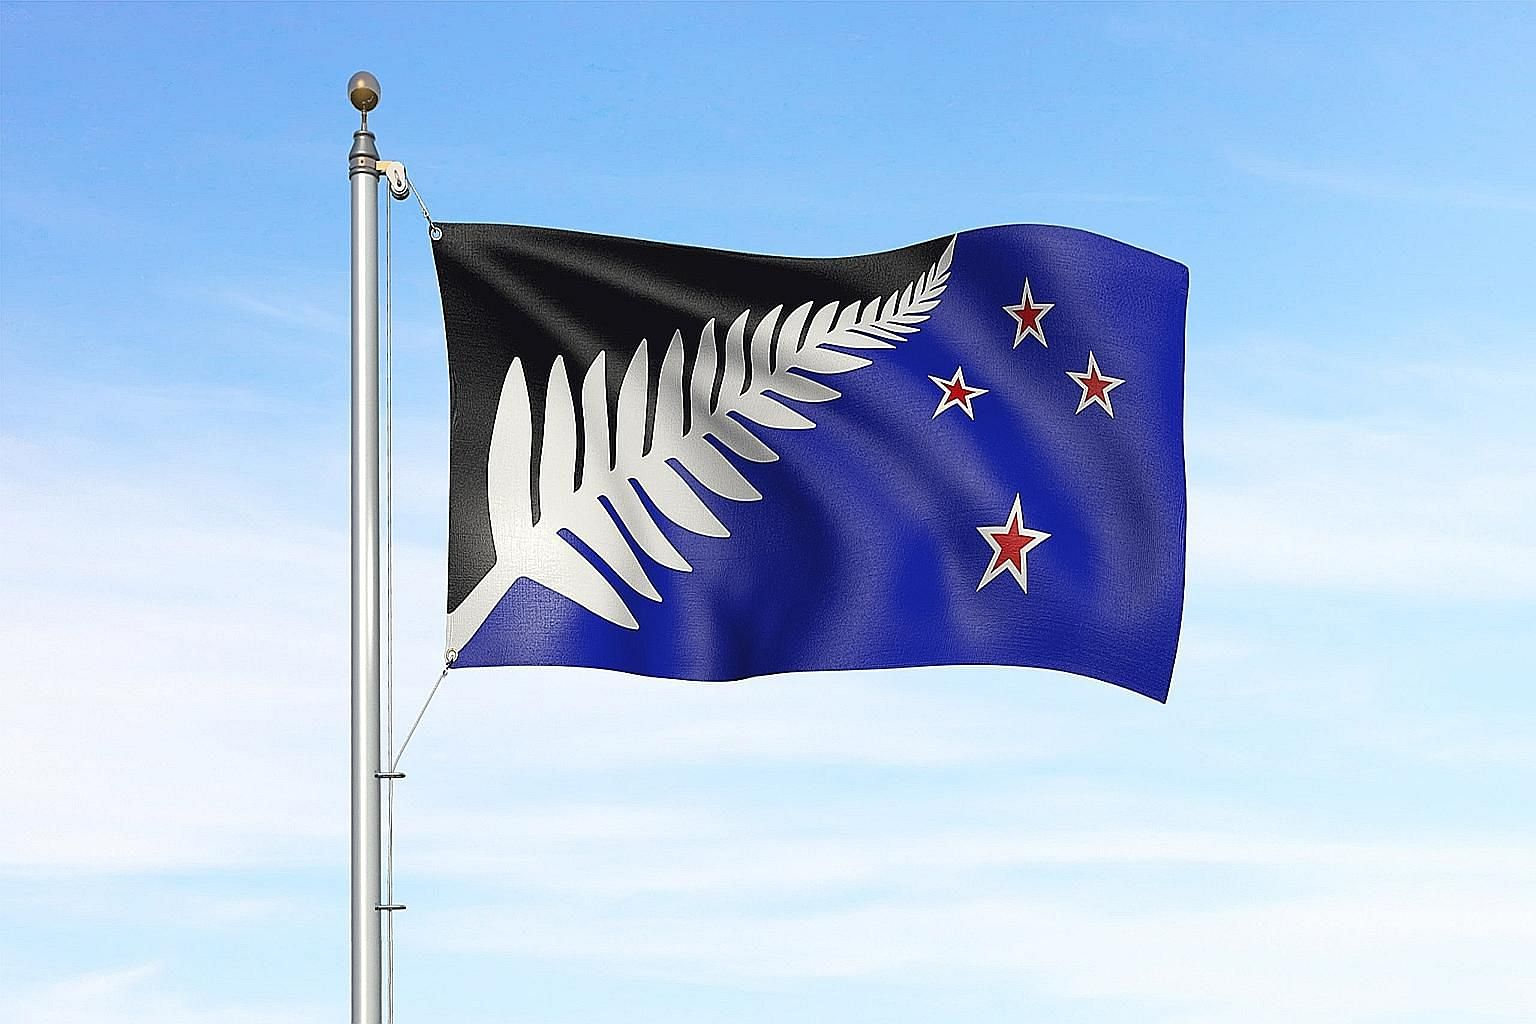 New Zealanders will decide at a referendum next year whether a design featuring a silver fern will replace the existing flag that includes Britain's Union Jack.